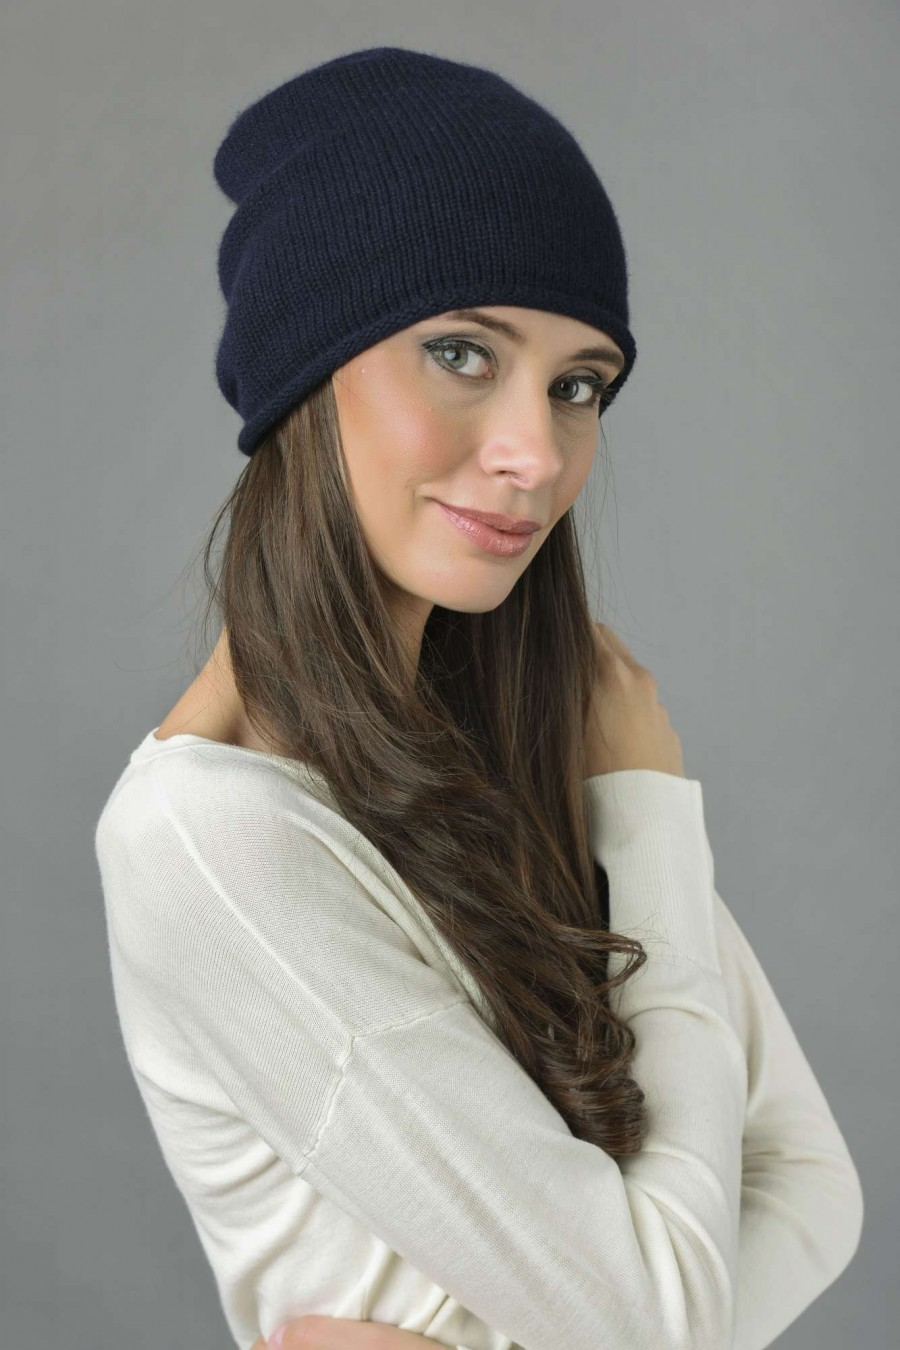 559dbf0d6 Pure Cashmere Plain Knitted Slouchy Beanie Hat in Navy Blue